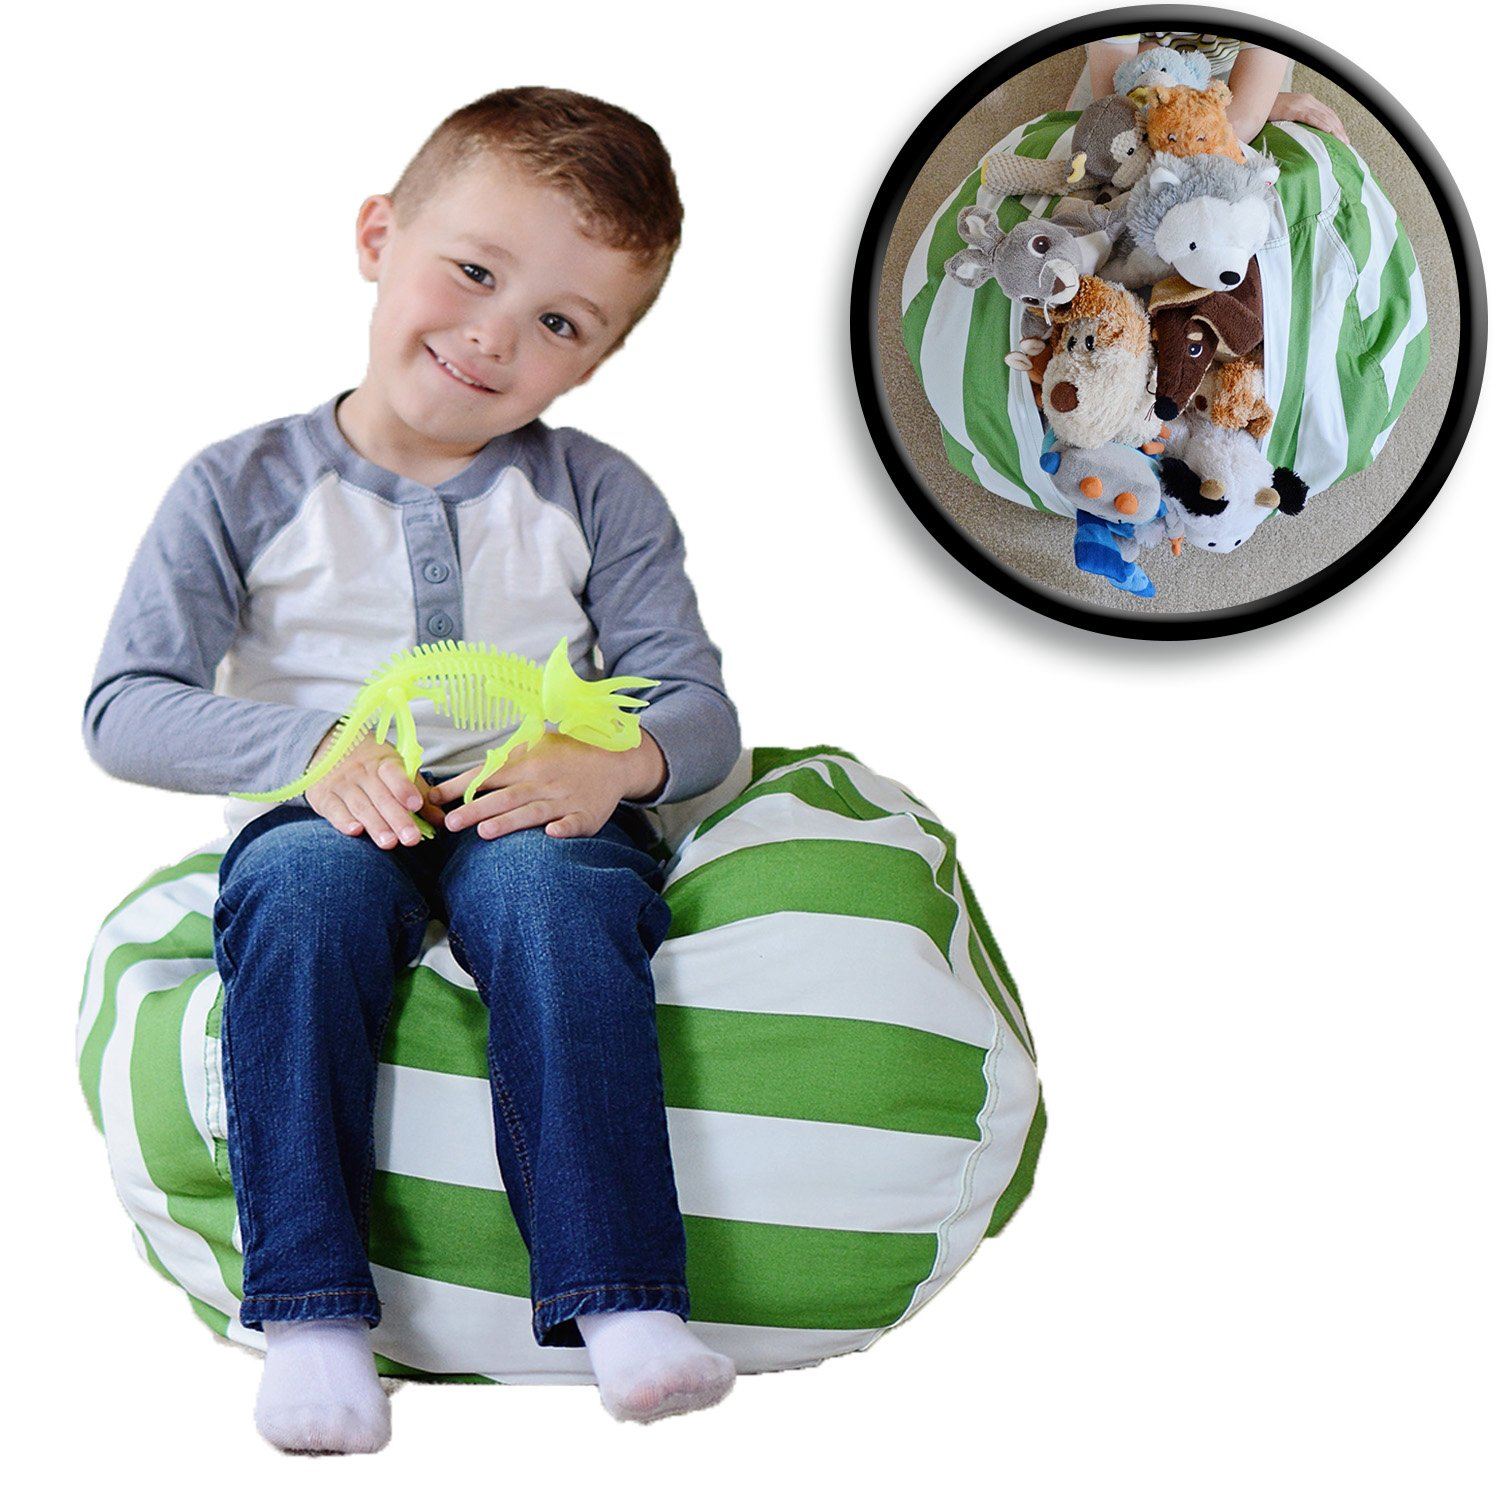 """Stuffed Animal Storage Bean Bag Chair - Premium Cotton - Clean Up The Room And Put Those Critters To Work For You! - By Creative Qt (27"""", Green/white Striped)"""